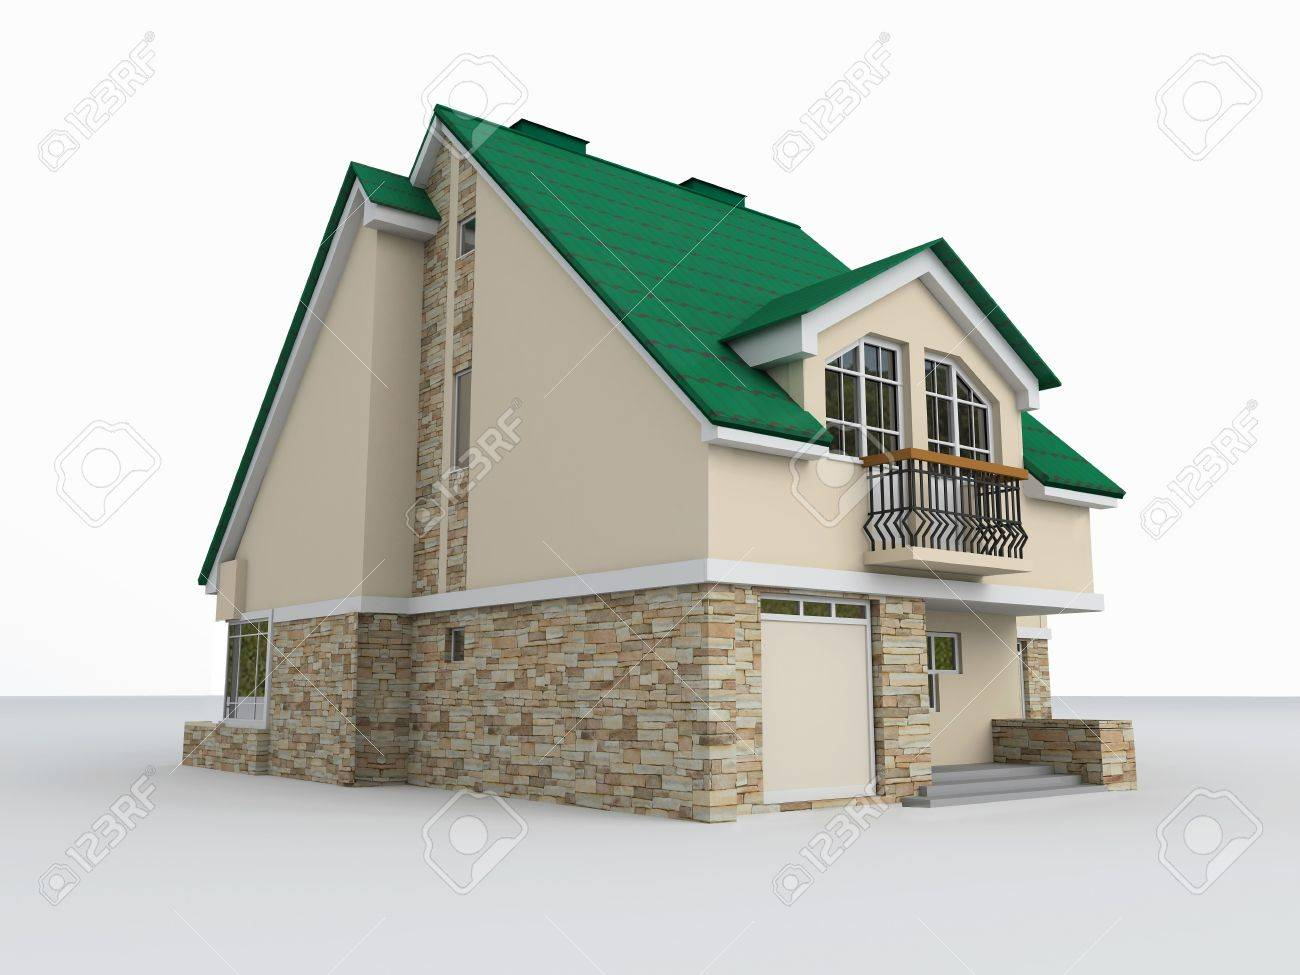 Model home structure